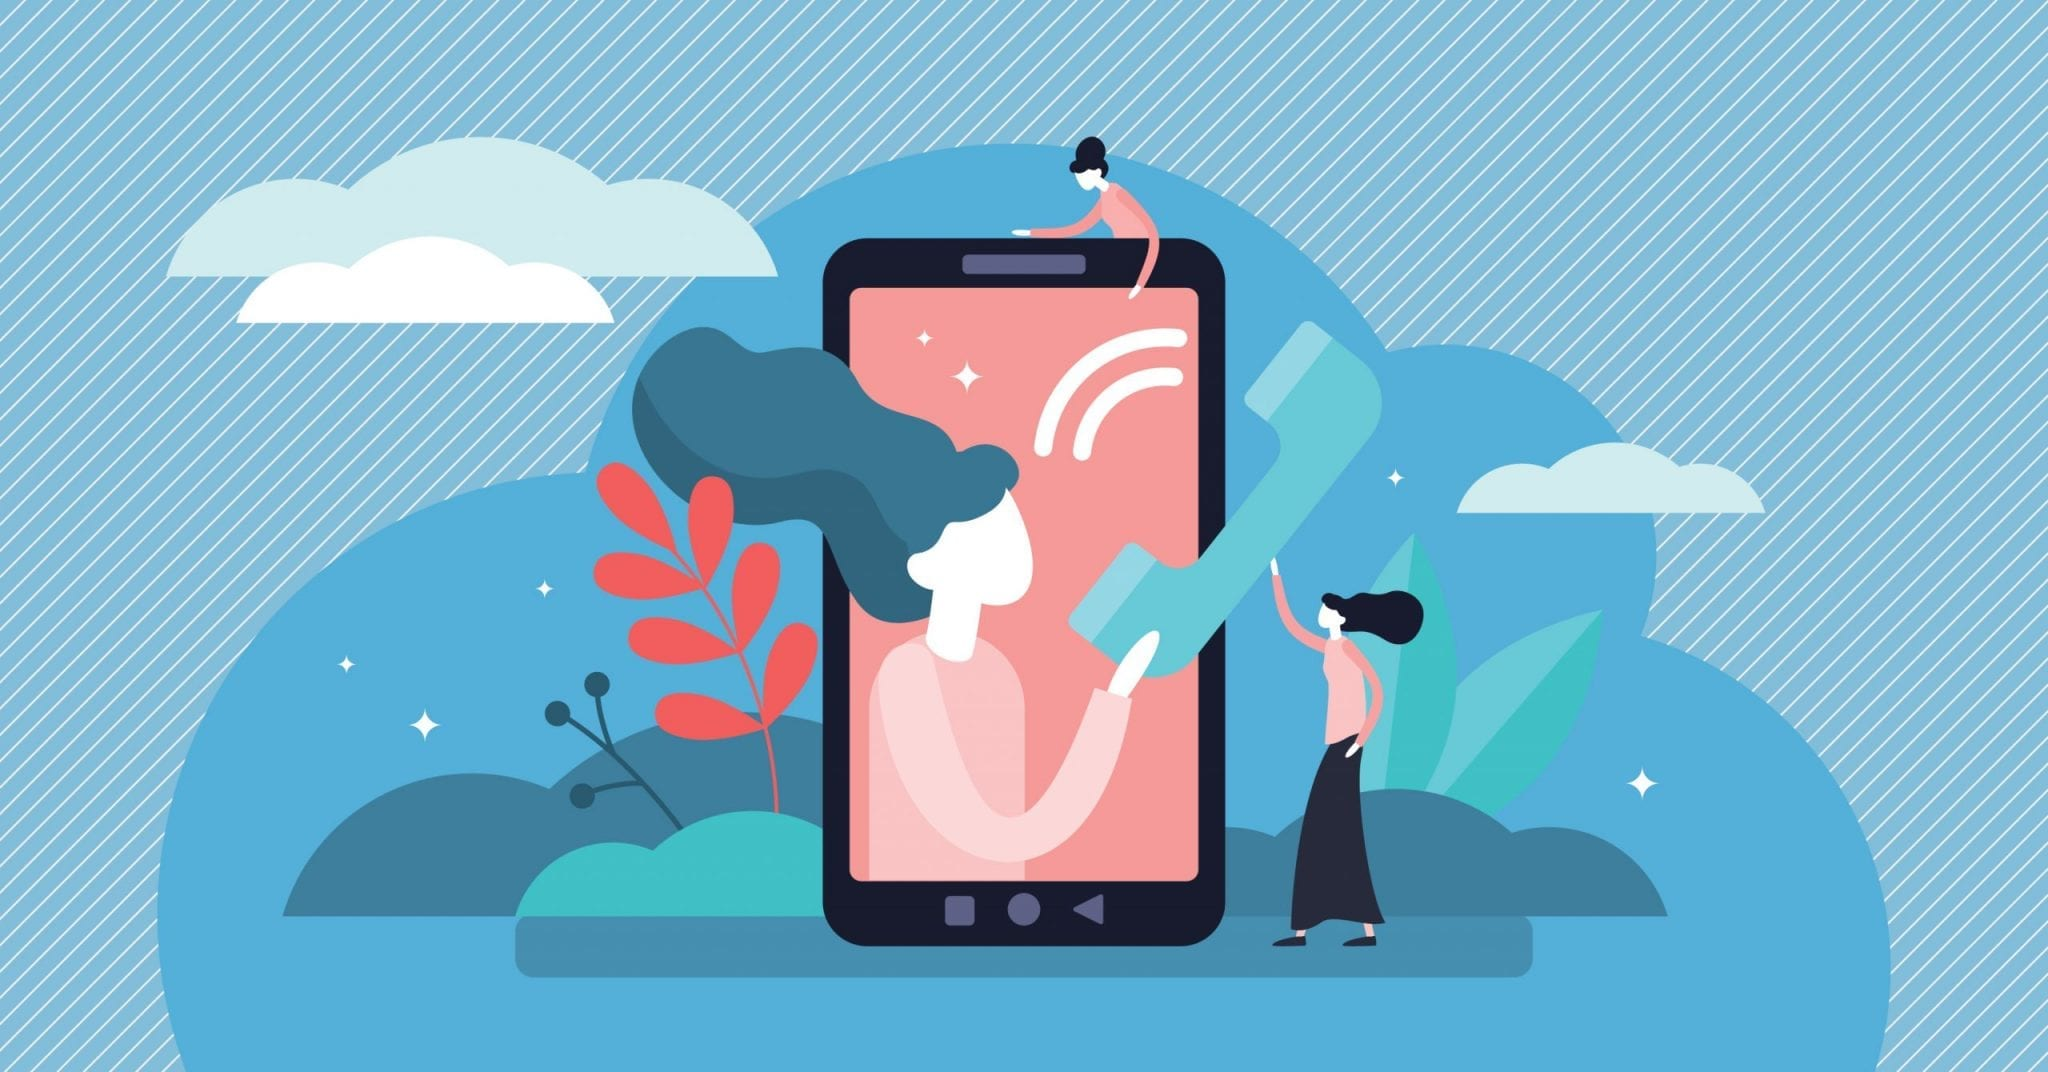 Call Vector Illustration Cellphone Communication Persons Concept